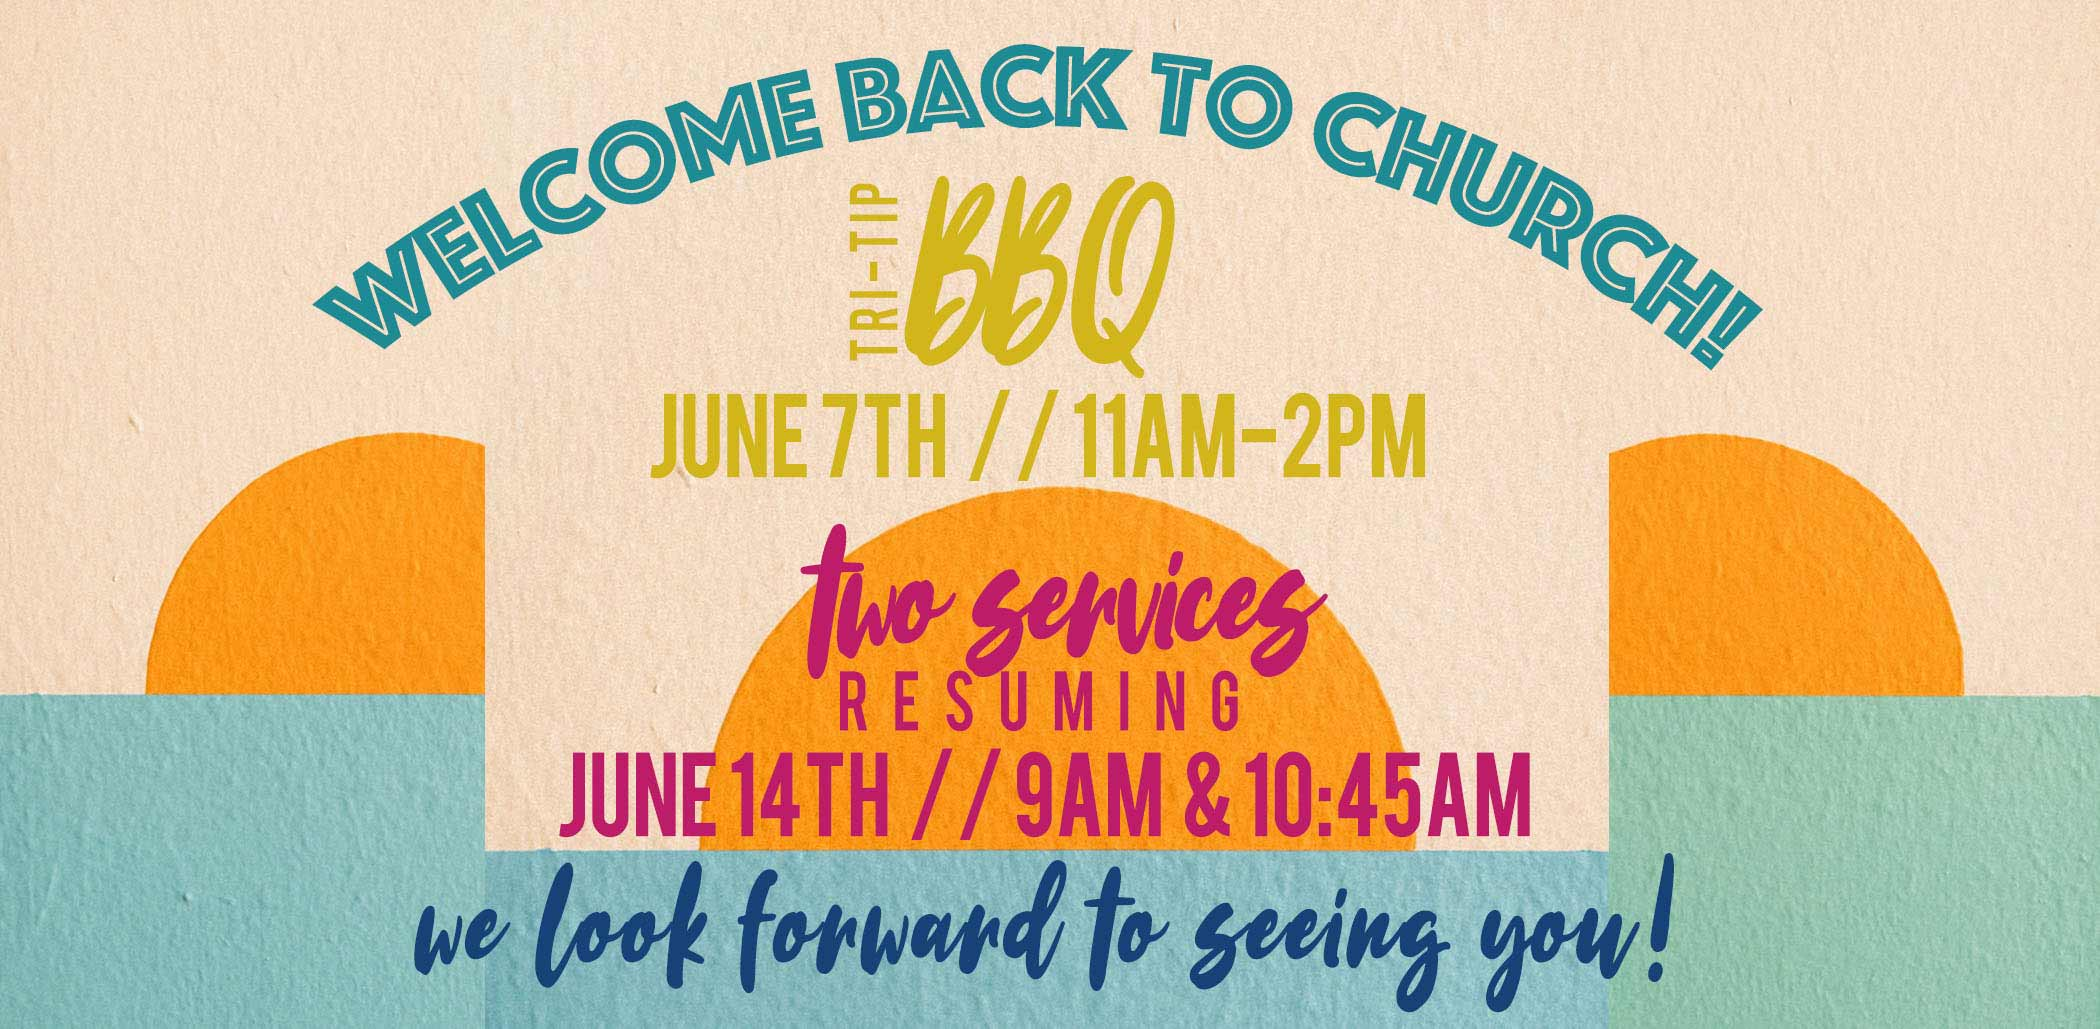 Welcome Back To Church!